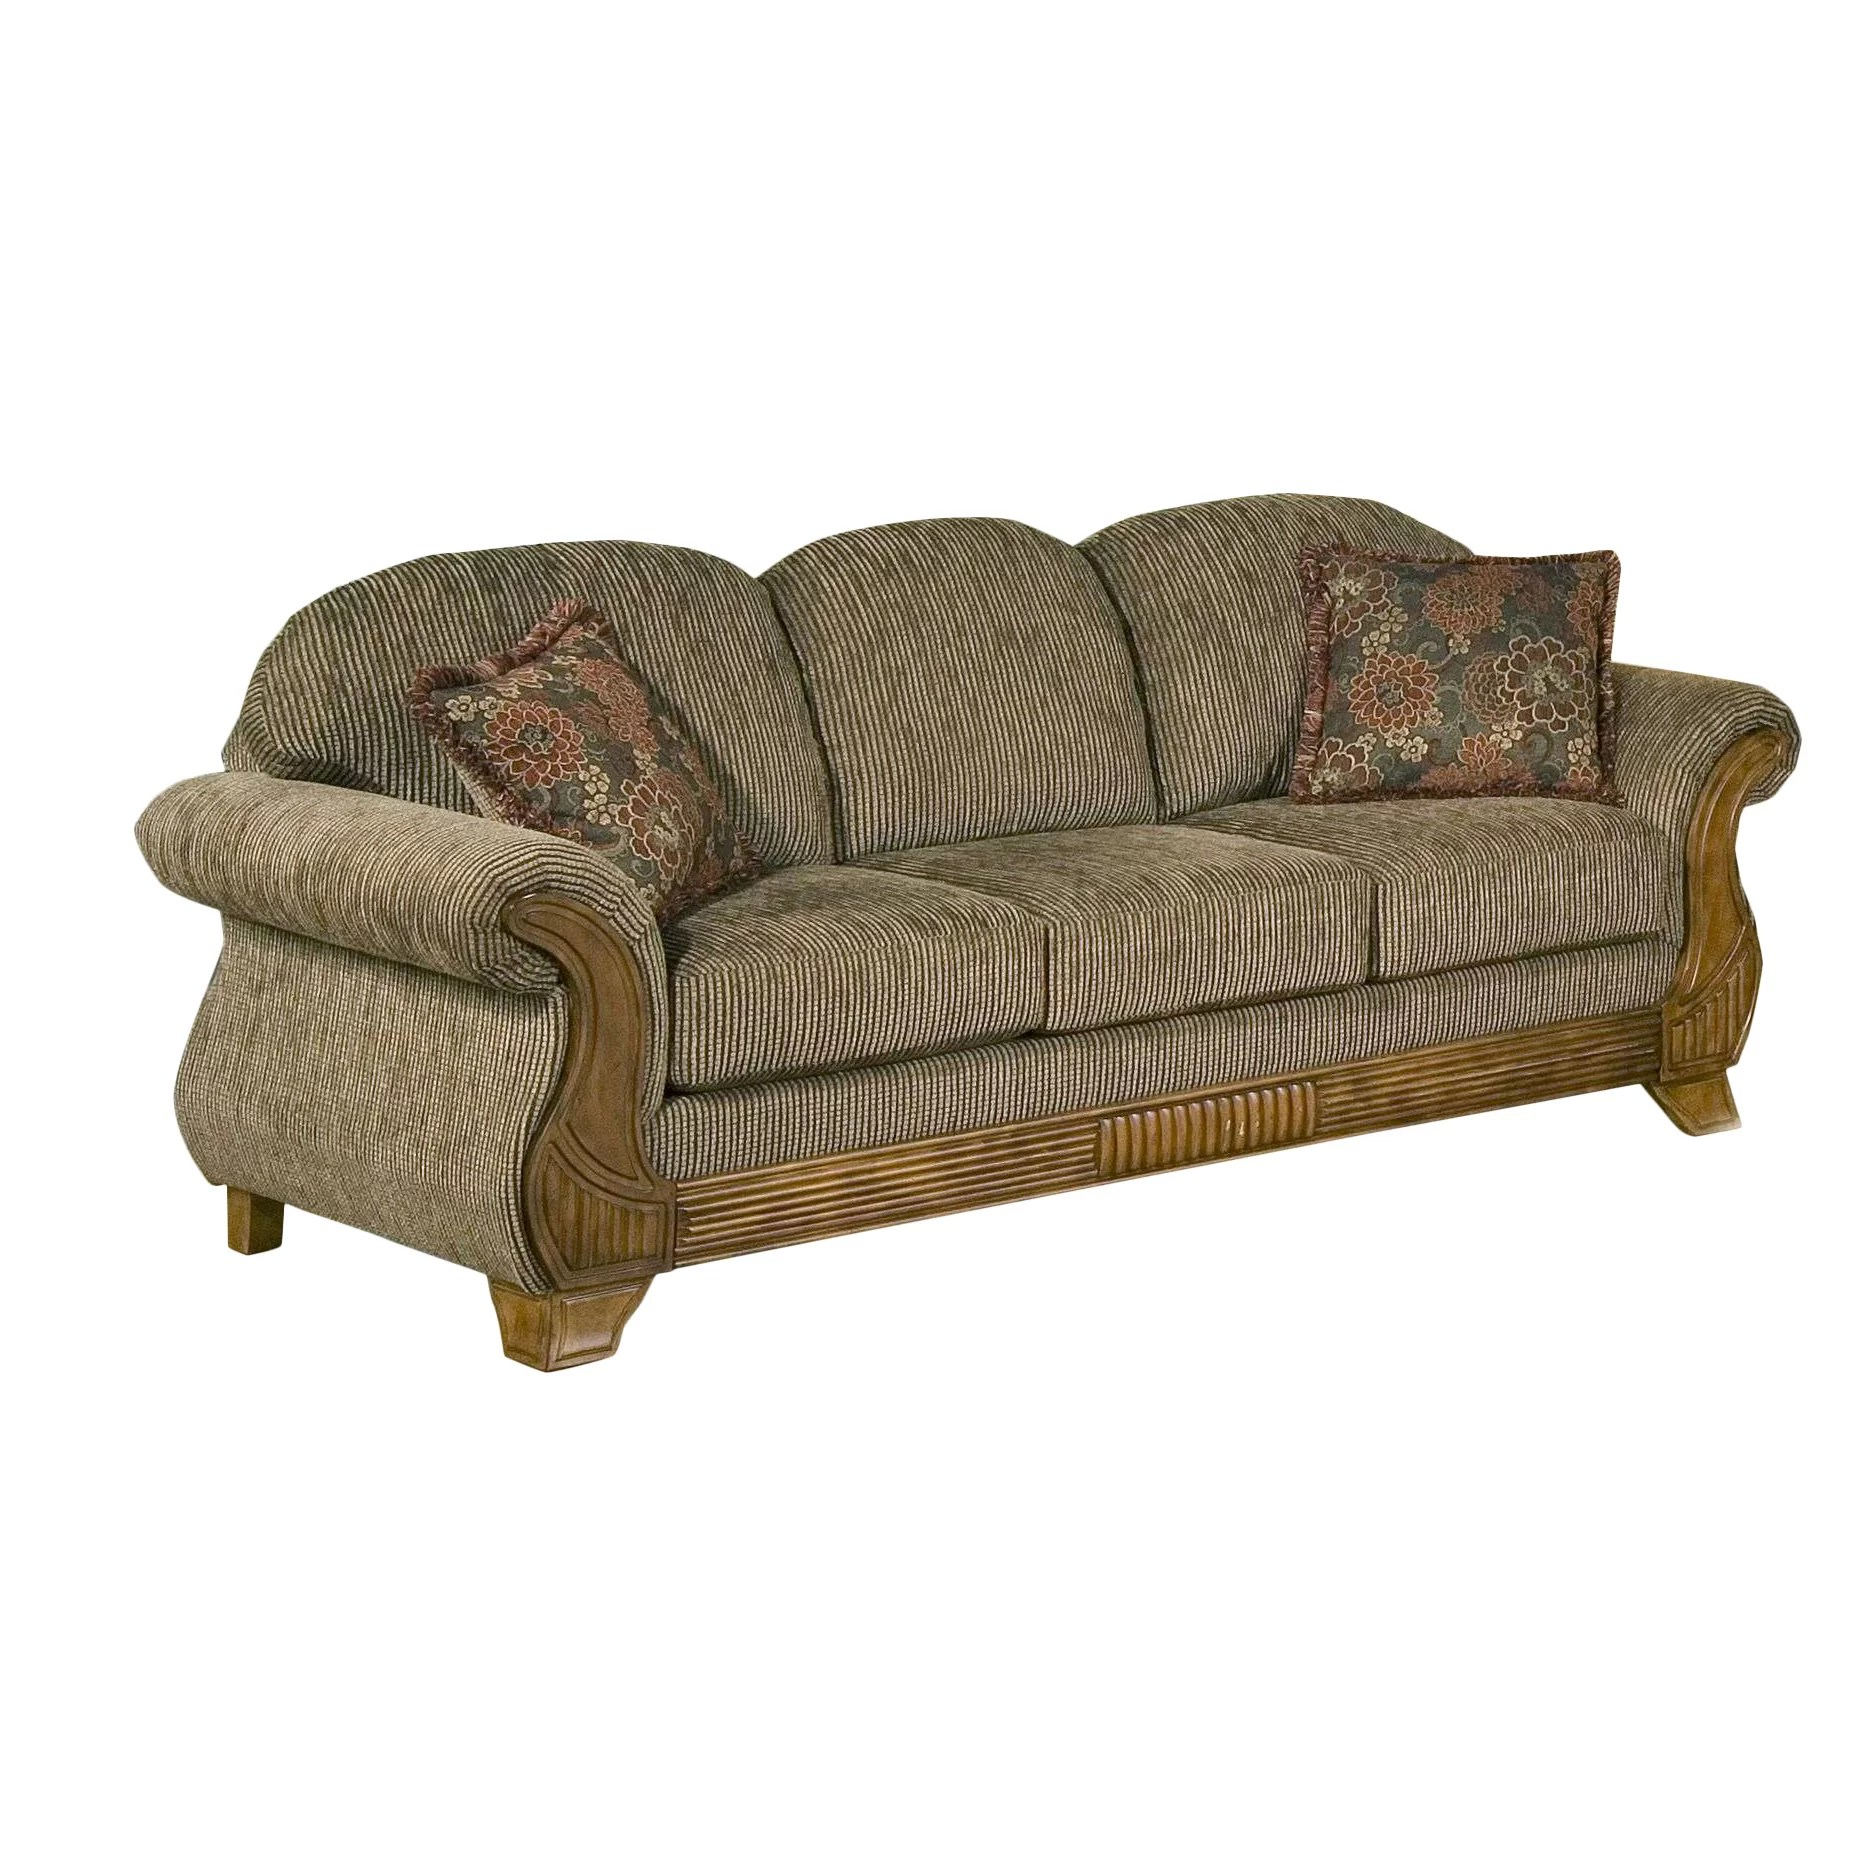 Astoria Grand Moncalieri Sofa by Serta Upholstery  Reviews  Wayfair